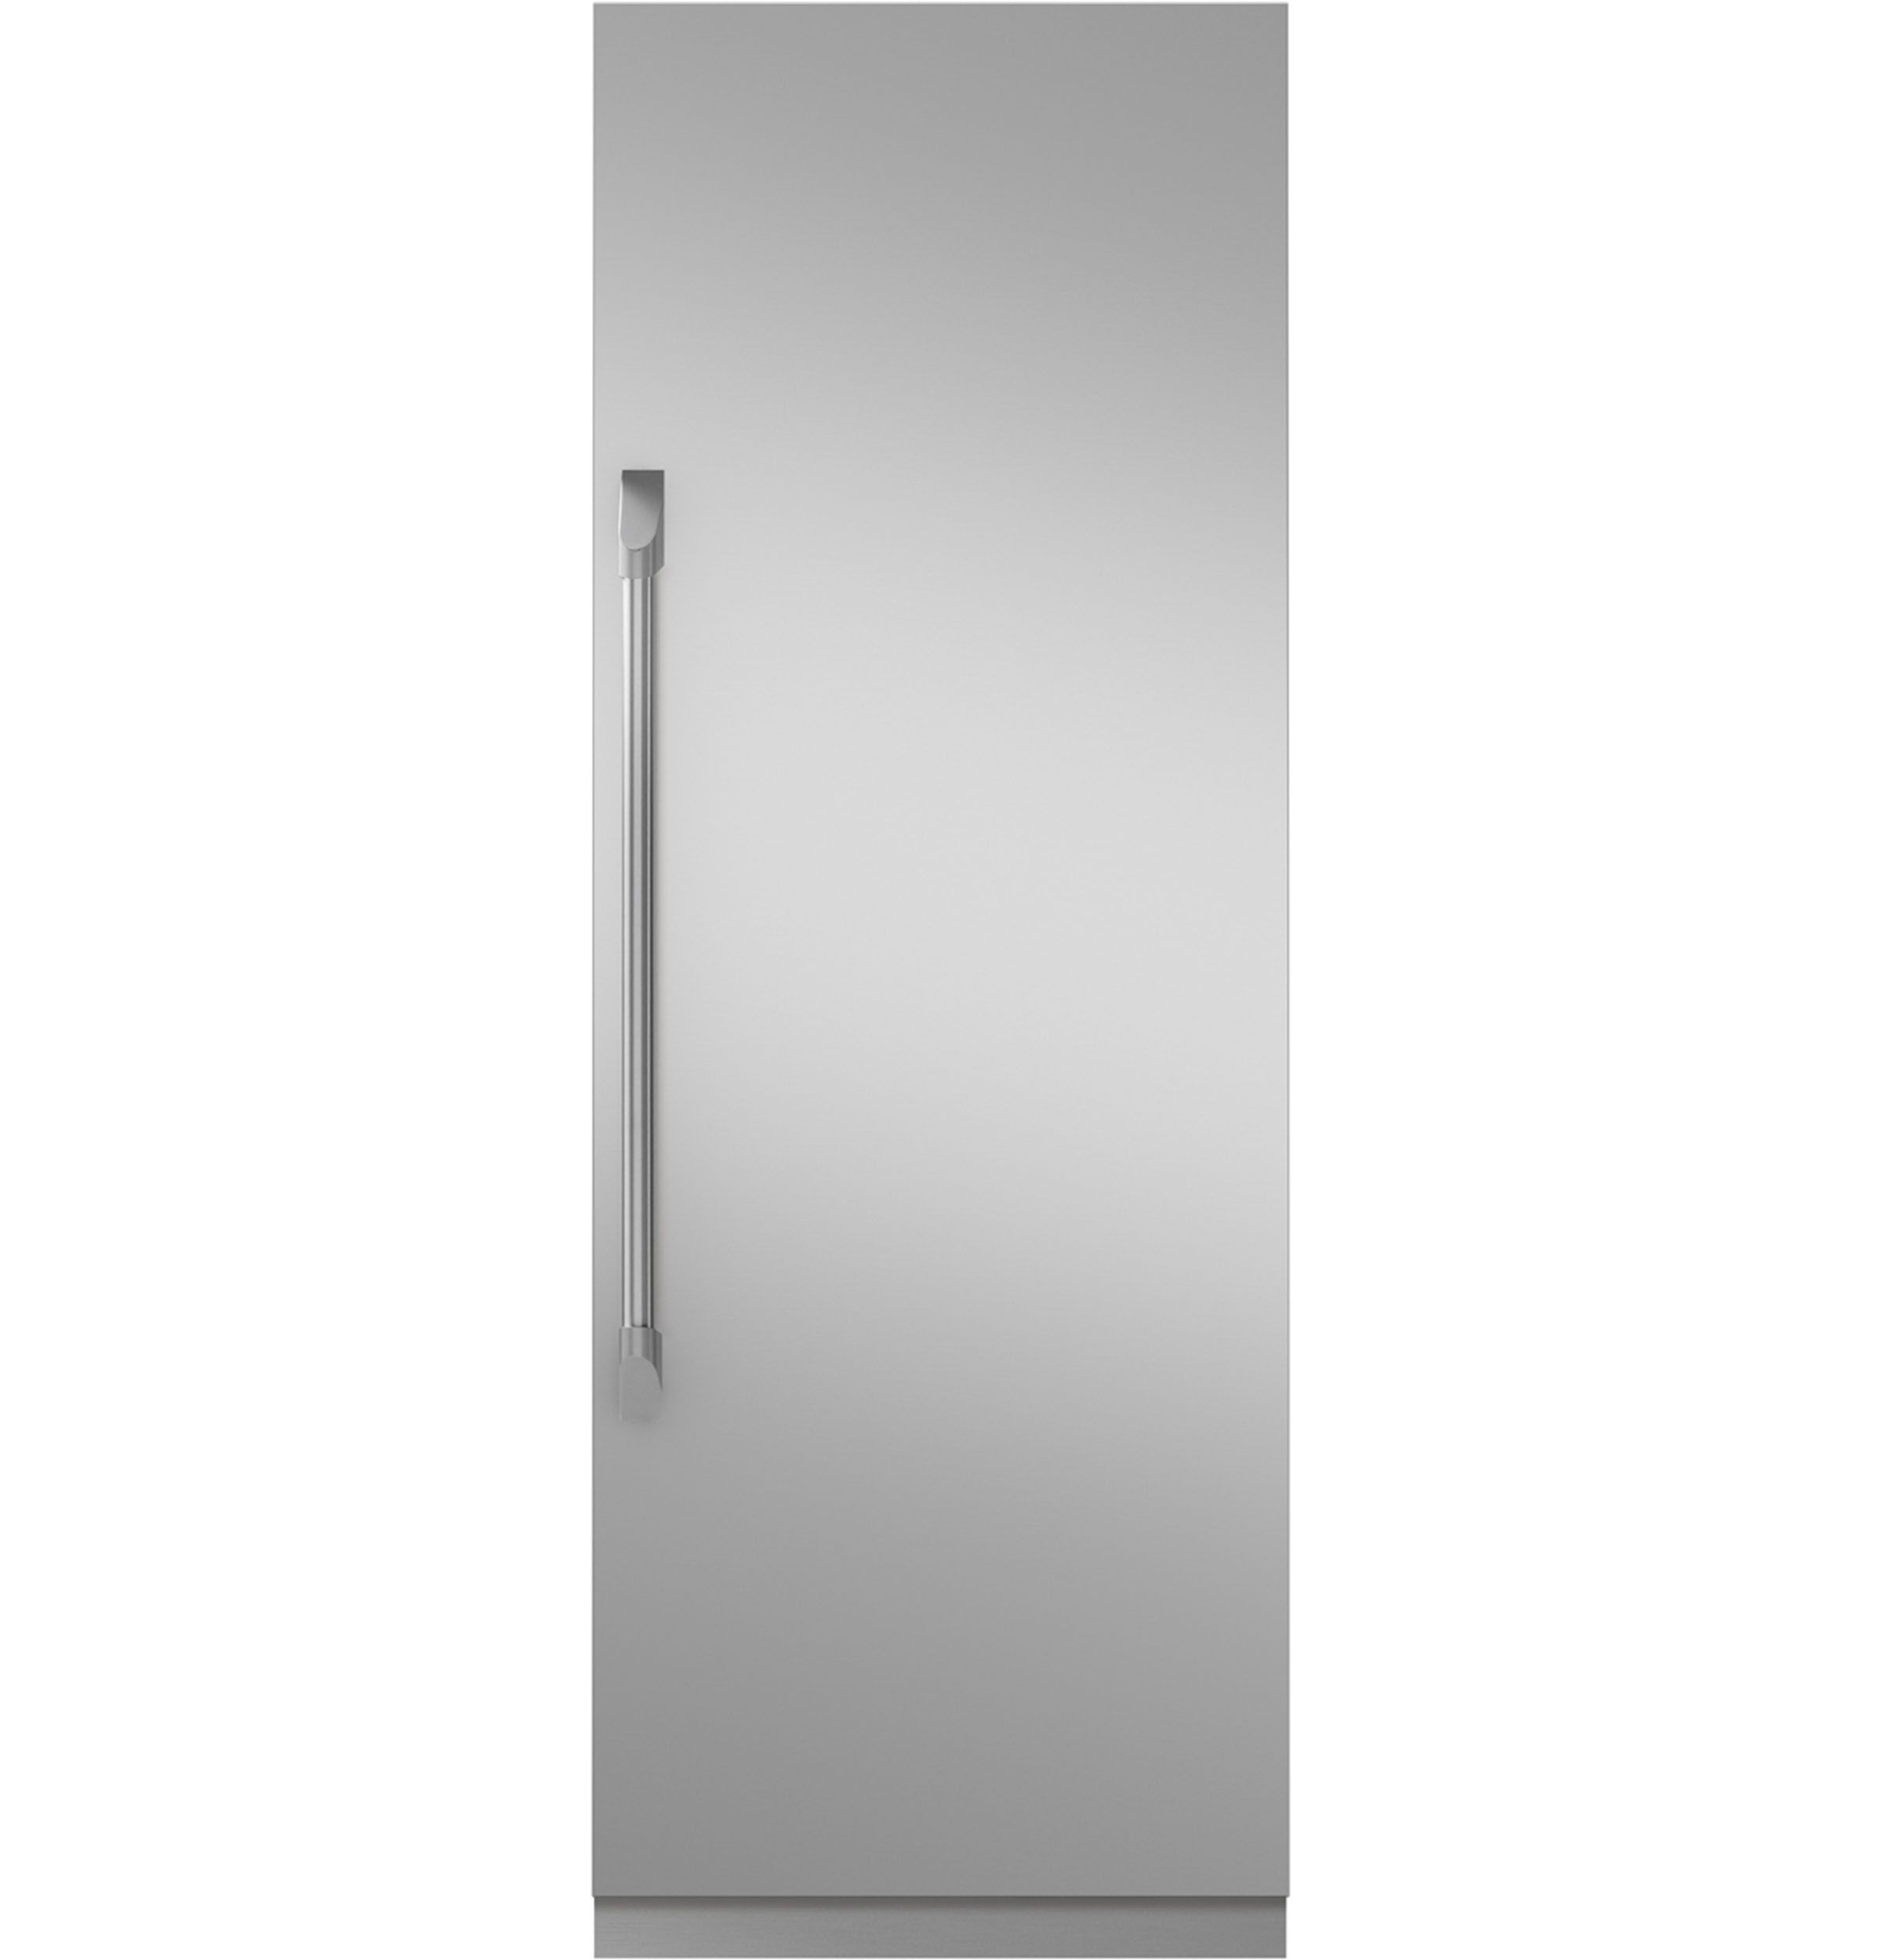 Zir300npkii Monogram 30 Integrated Column Refrigerator Monogram Appliances Stainless Steel Doors Steel Doors Monogram Appliances